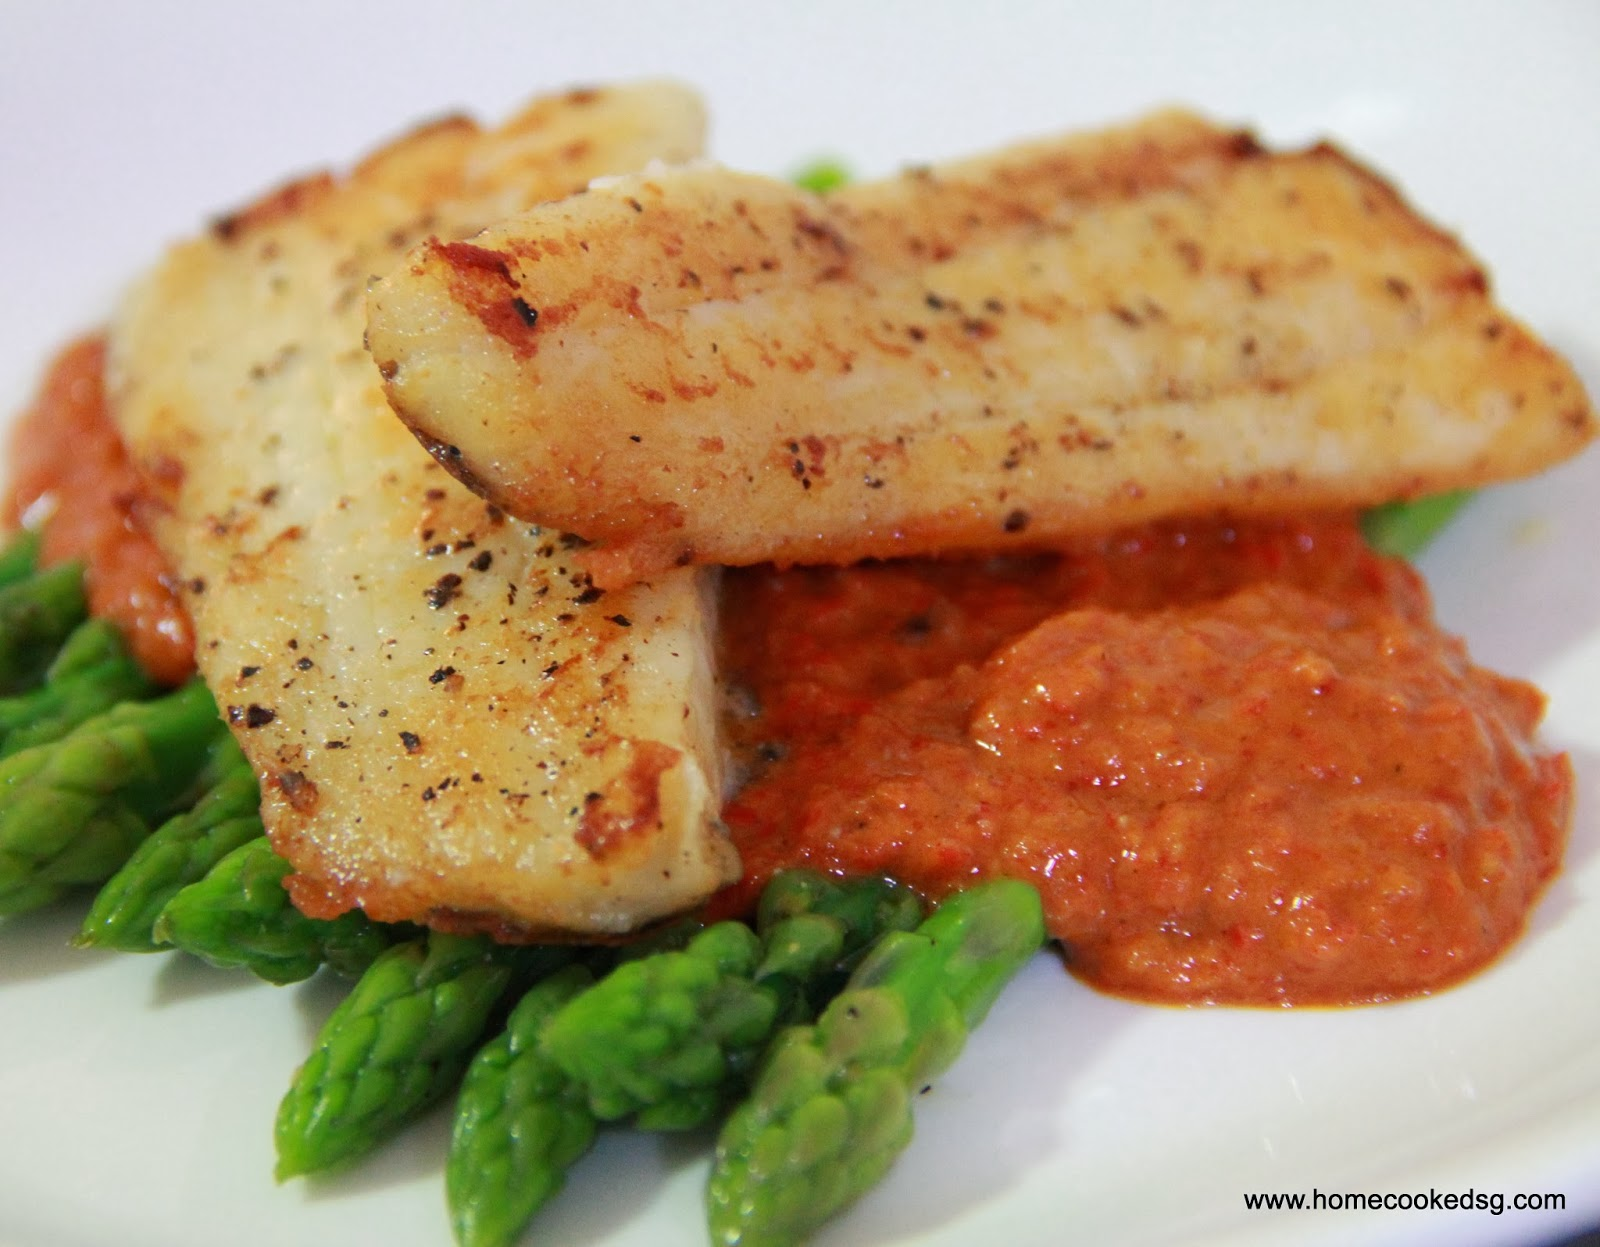 Home cooked sg pan fried fish fillet and red pepper sauce for Pan fried fish fillet recipes